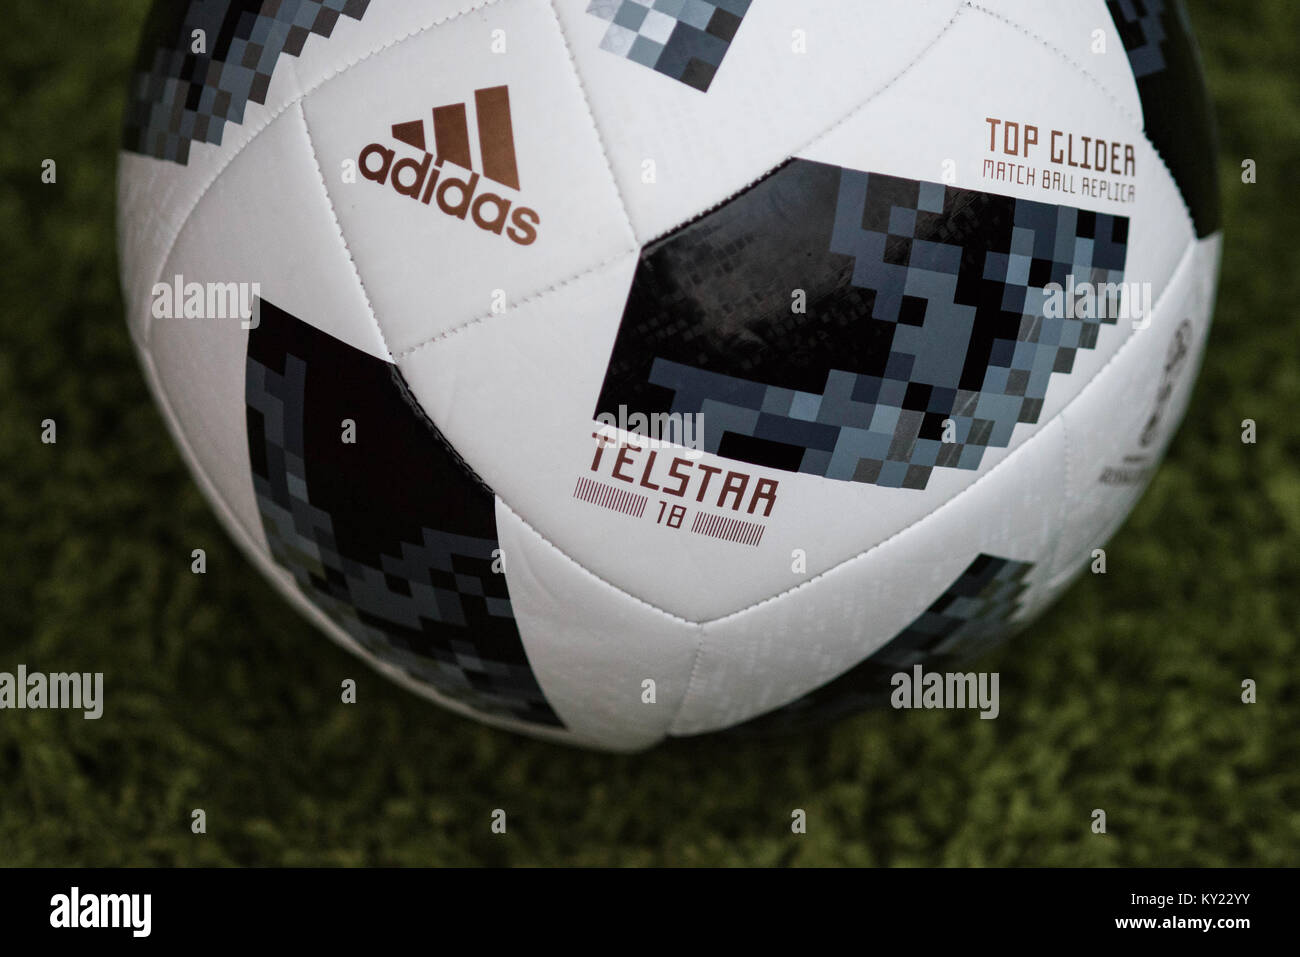 Official Matchball for the FIFA World Cup 2018. Adidas Telstar Football. - Stock Image